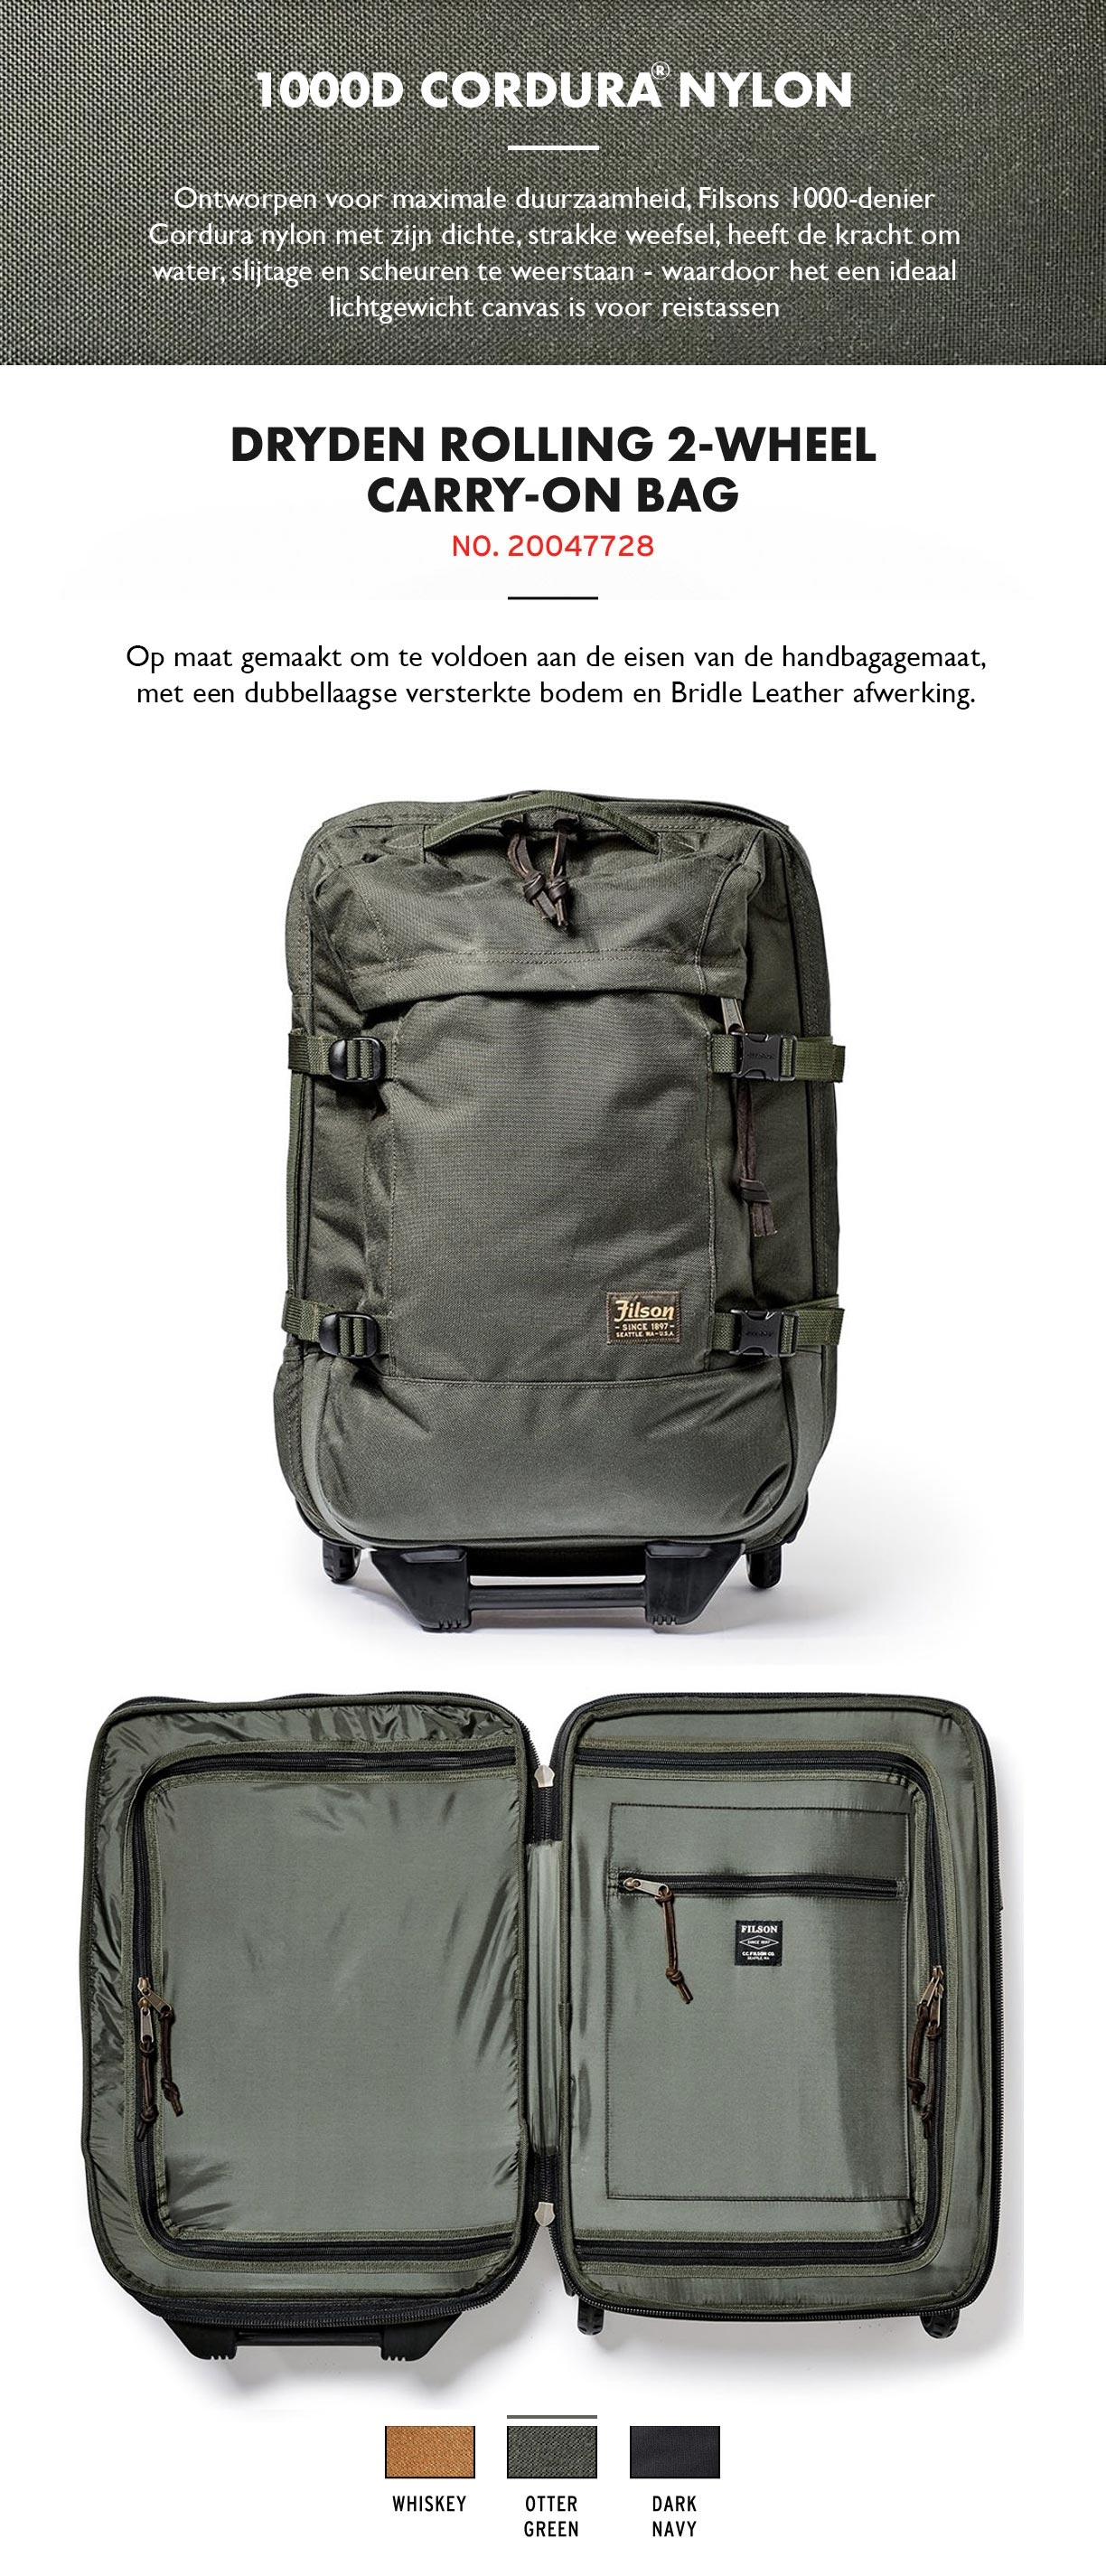 Filson Dryden 2-Wheel Rolling Carry-On Bag Otter Green Productinformatie